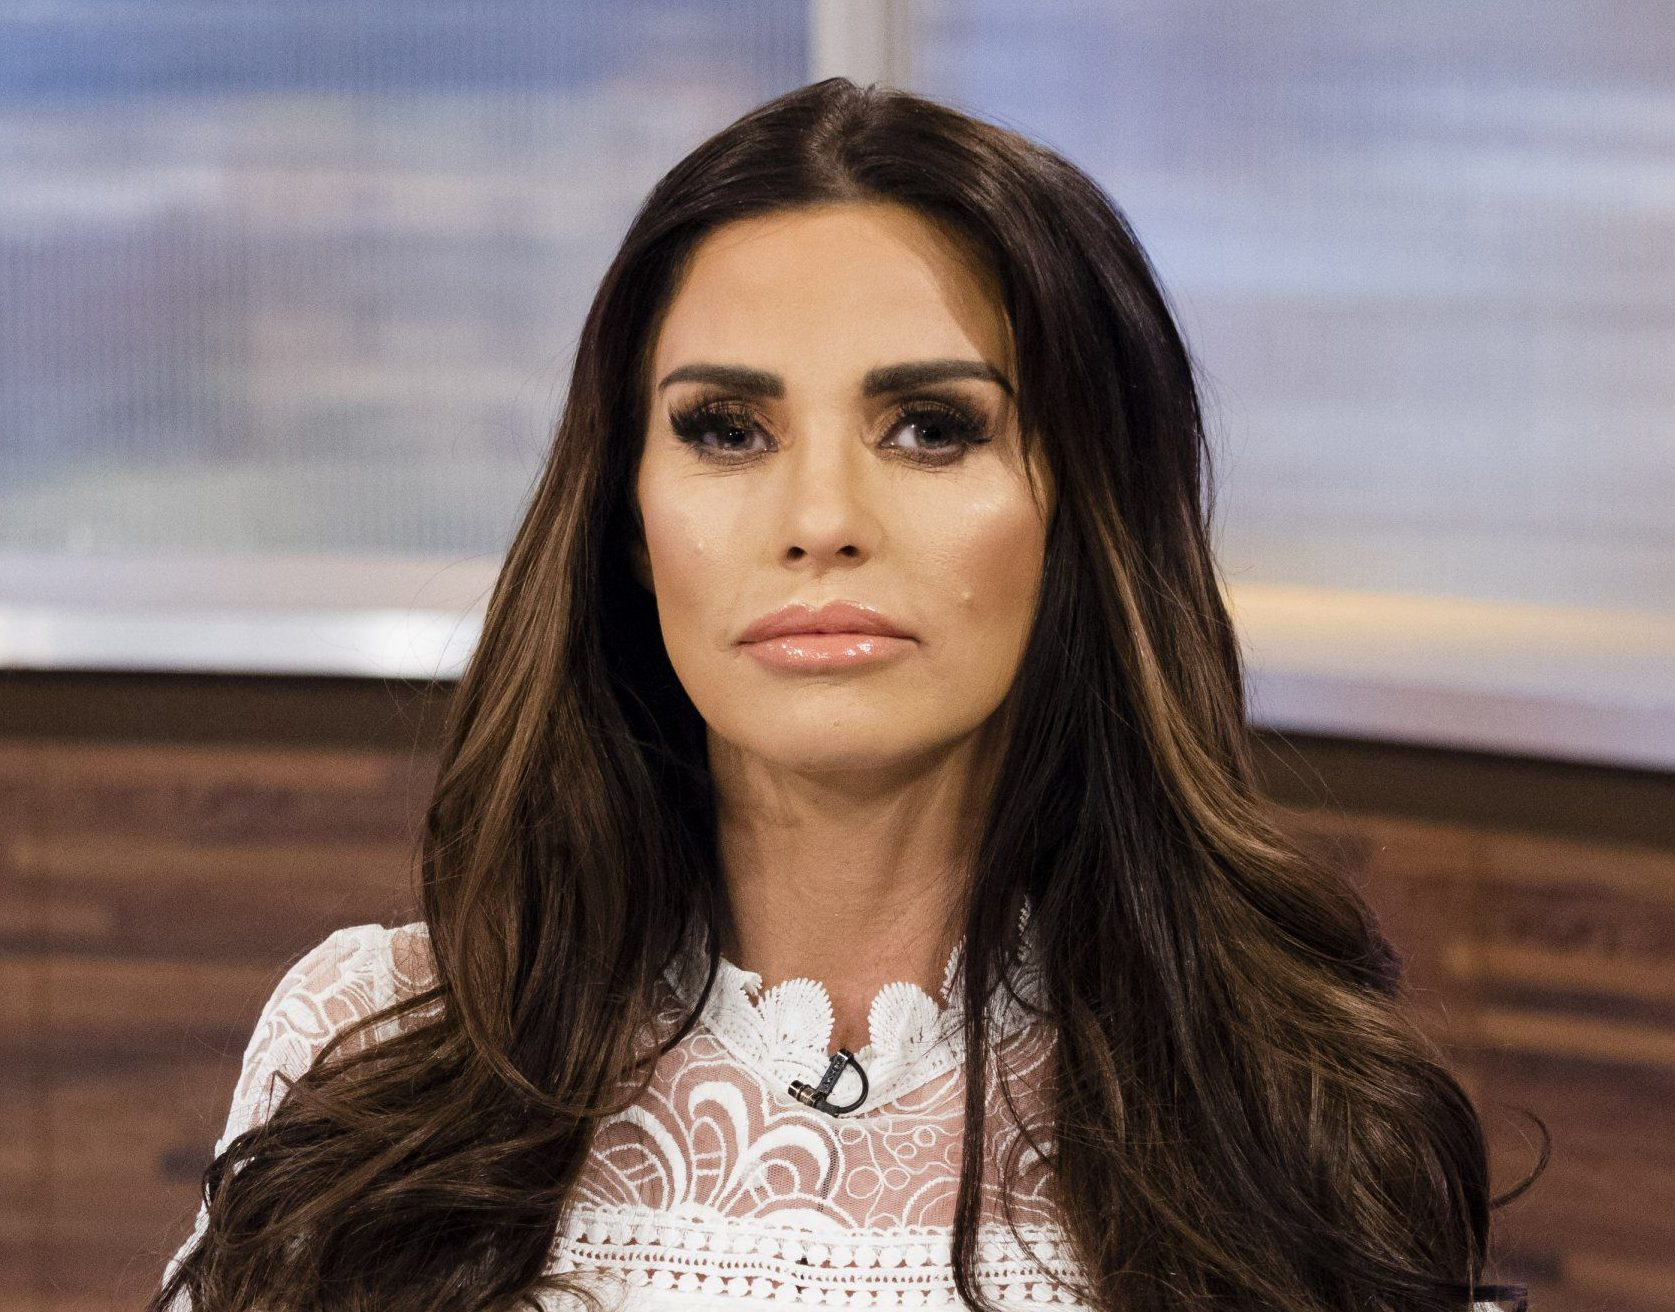 EDITORIAL USE ONLY. NO MERCHANDISING Mandatory Credit: Photo by Ken McKay/ITV/REX/Shutterstock (9353188bq) Katie Price 'Peston On Sunday' TV show, London, UK - 04 Feb 2018